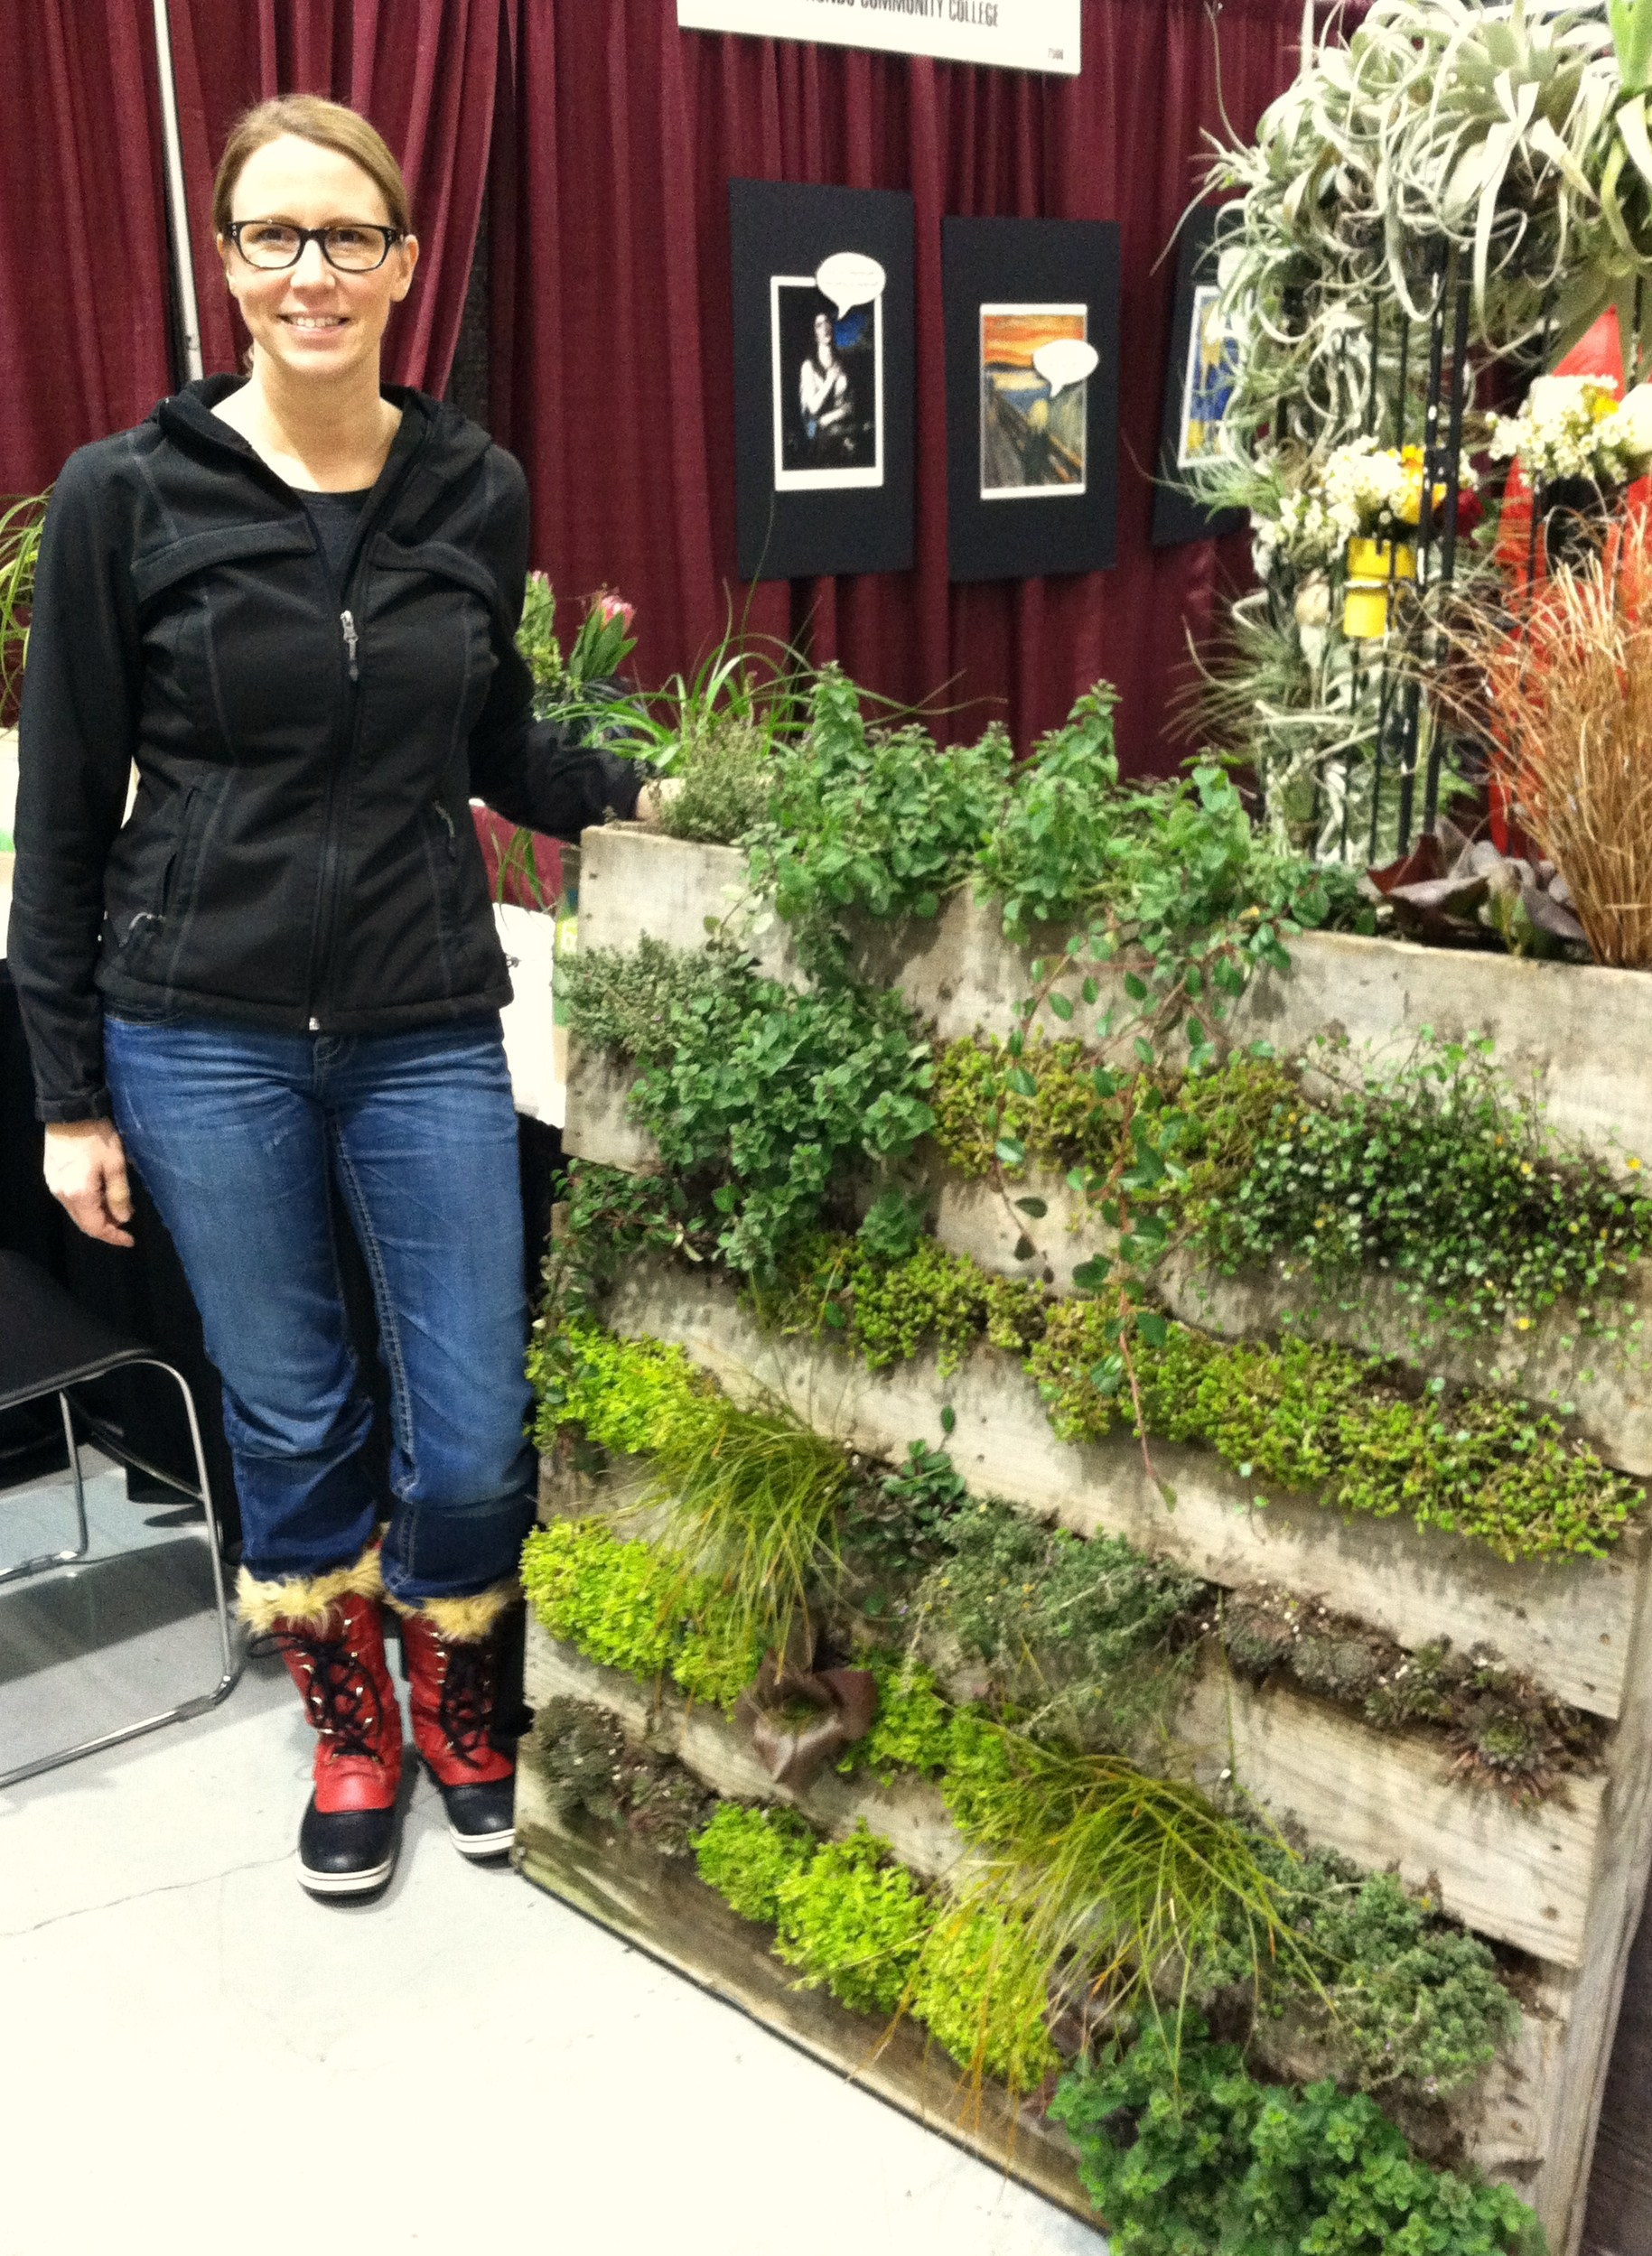 Northwest Garden Show: Coolest Idea Ever!